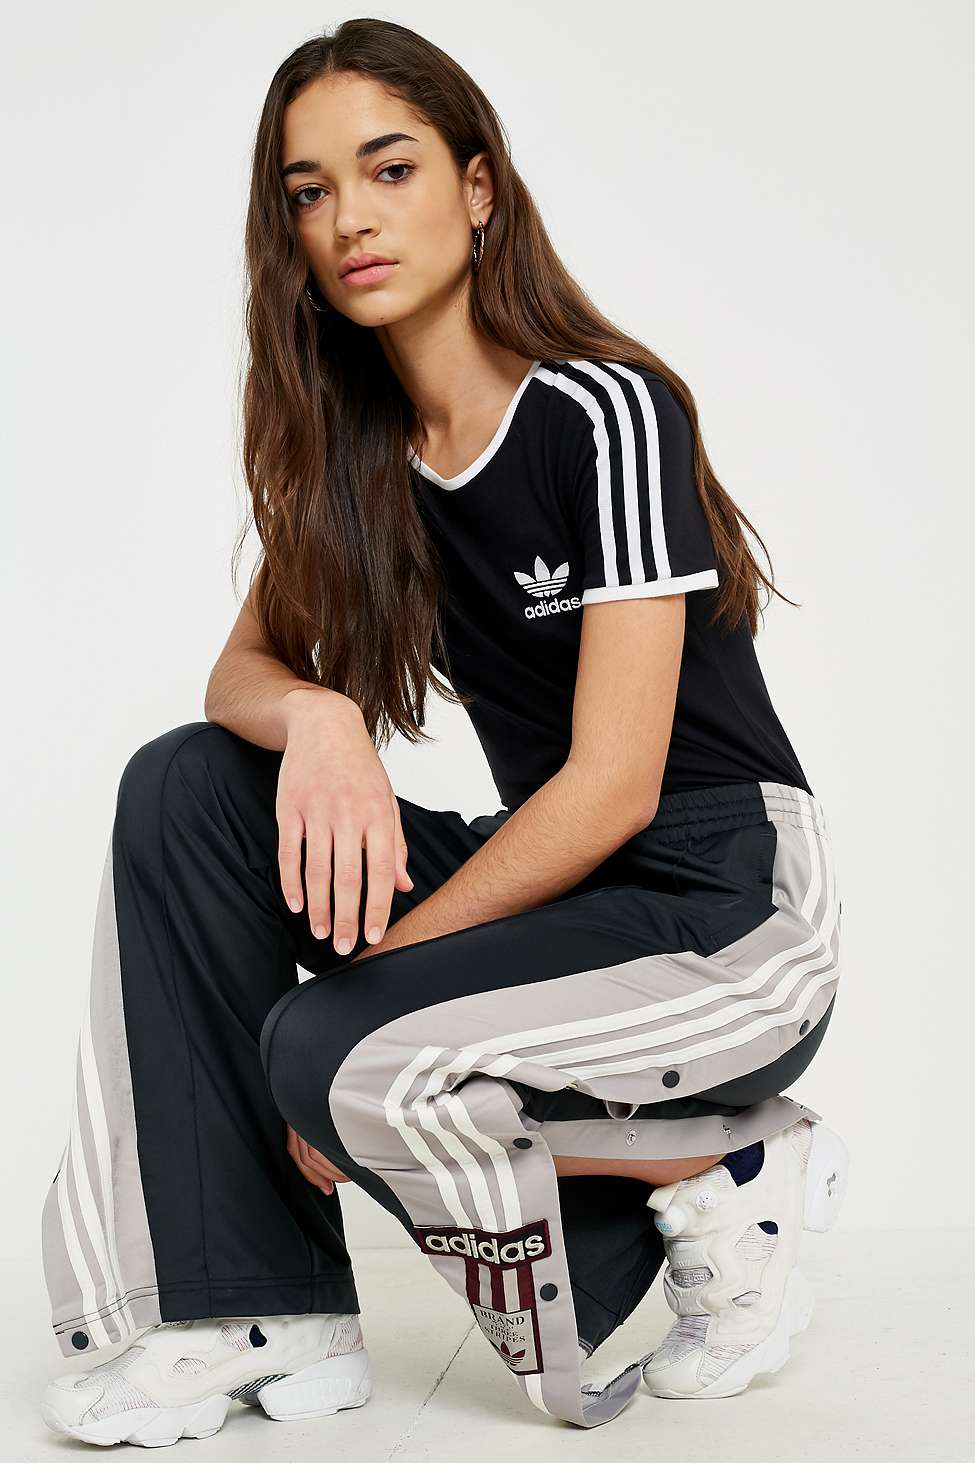 adidas Originals Sandra 3-Stripes Black T-shirt, Black